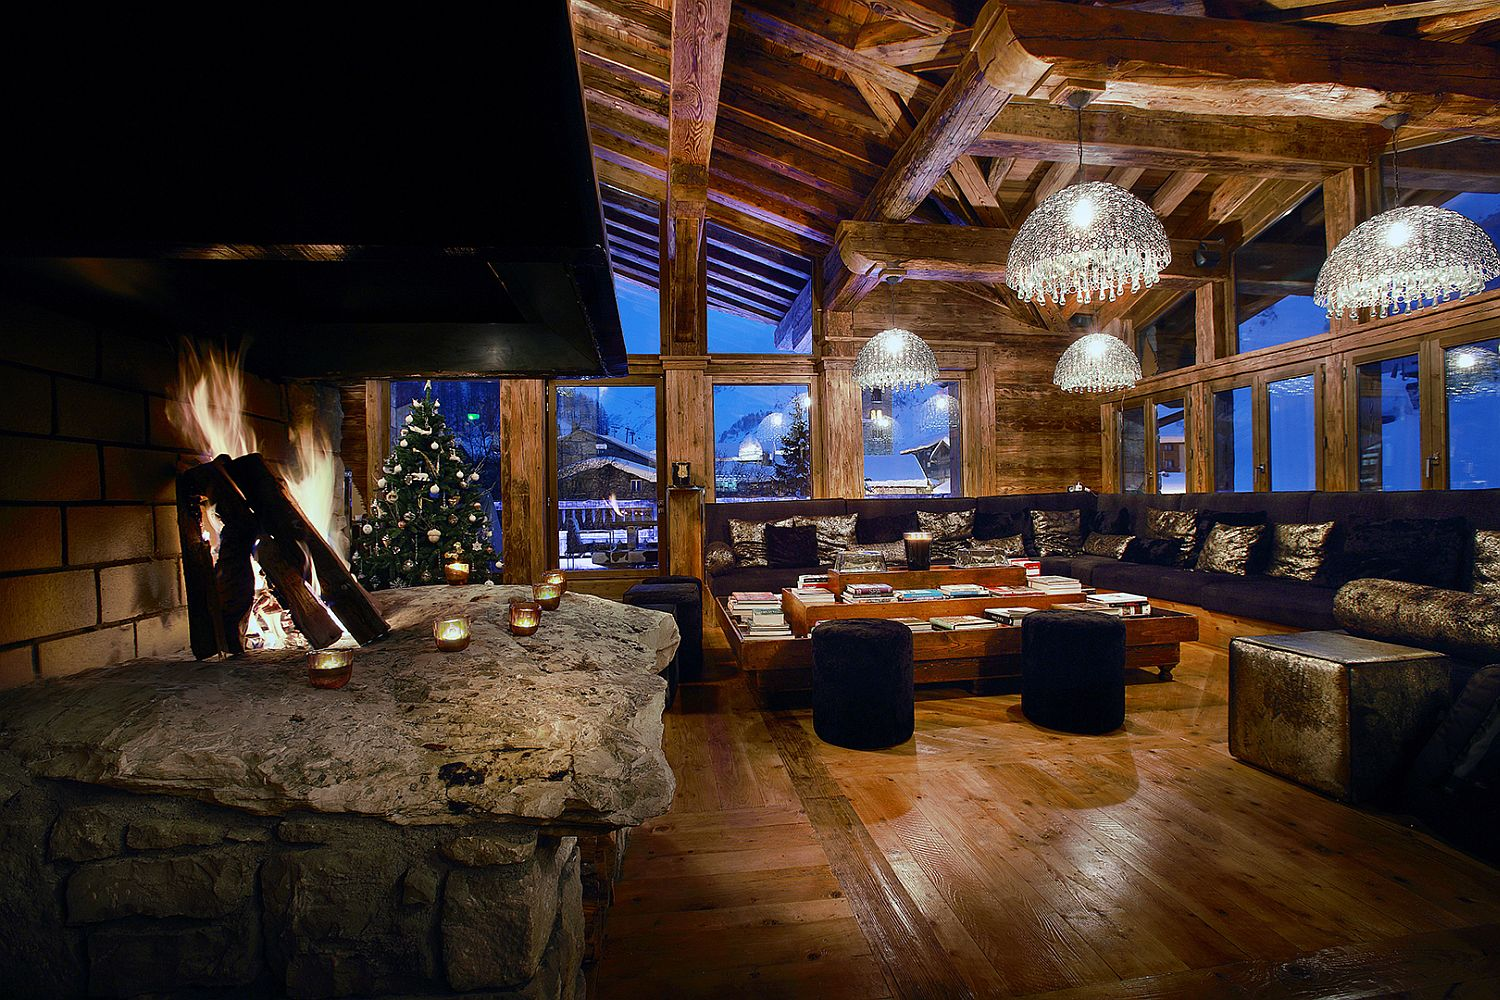 Exquisite fireplace inside spacious living room